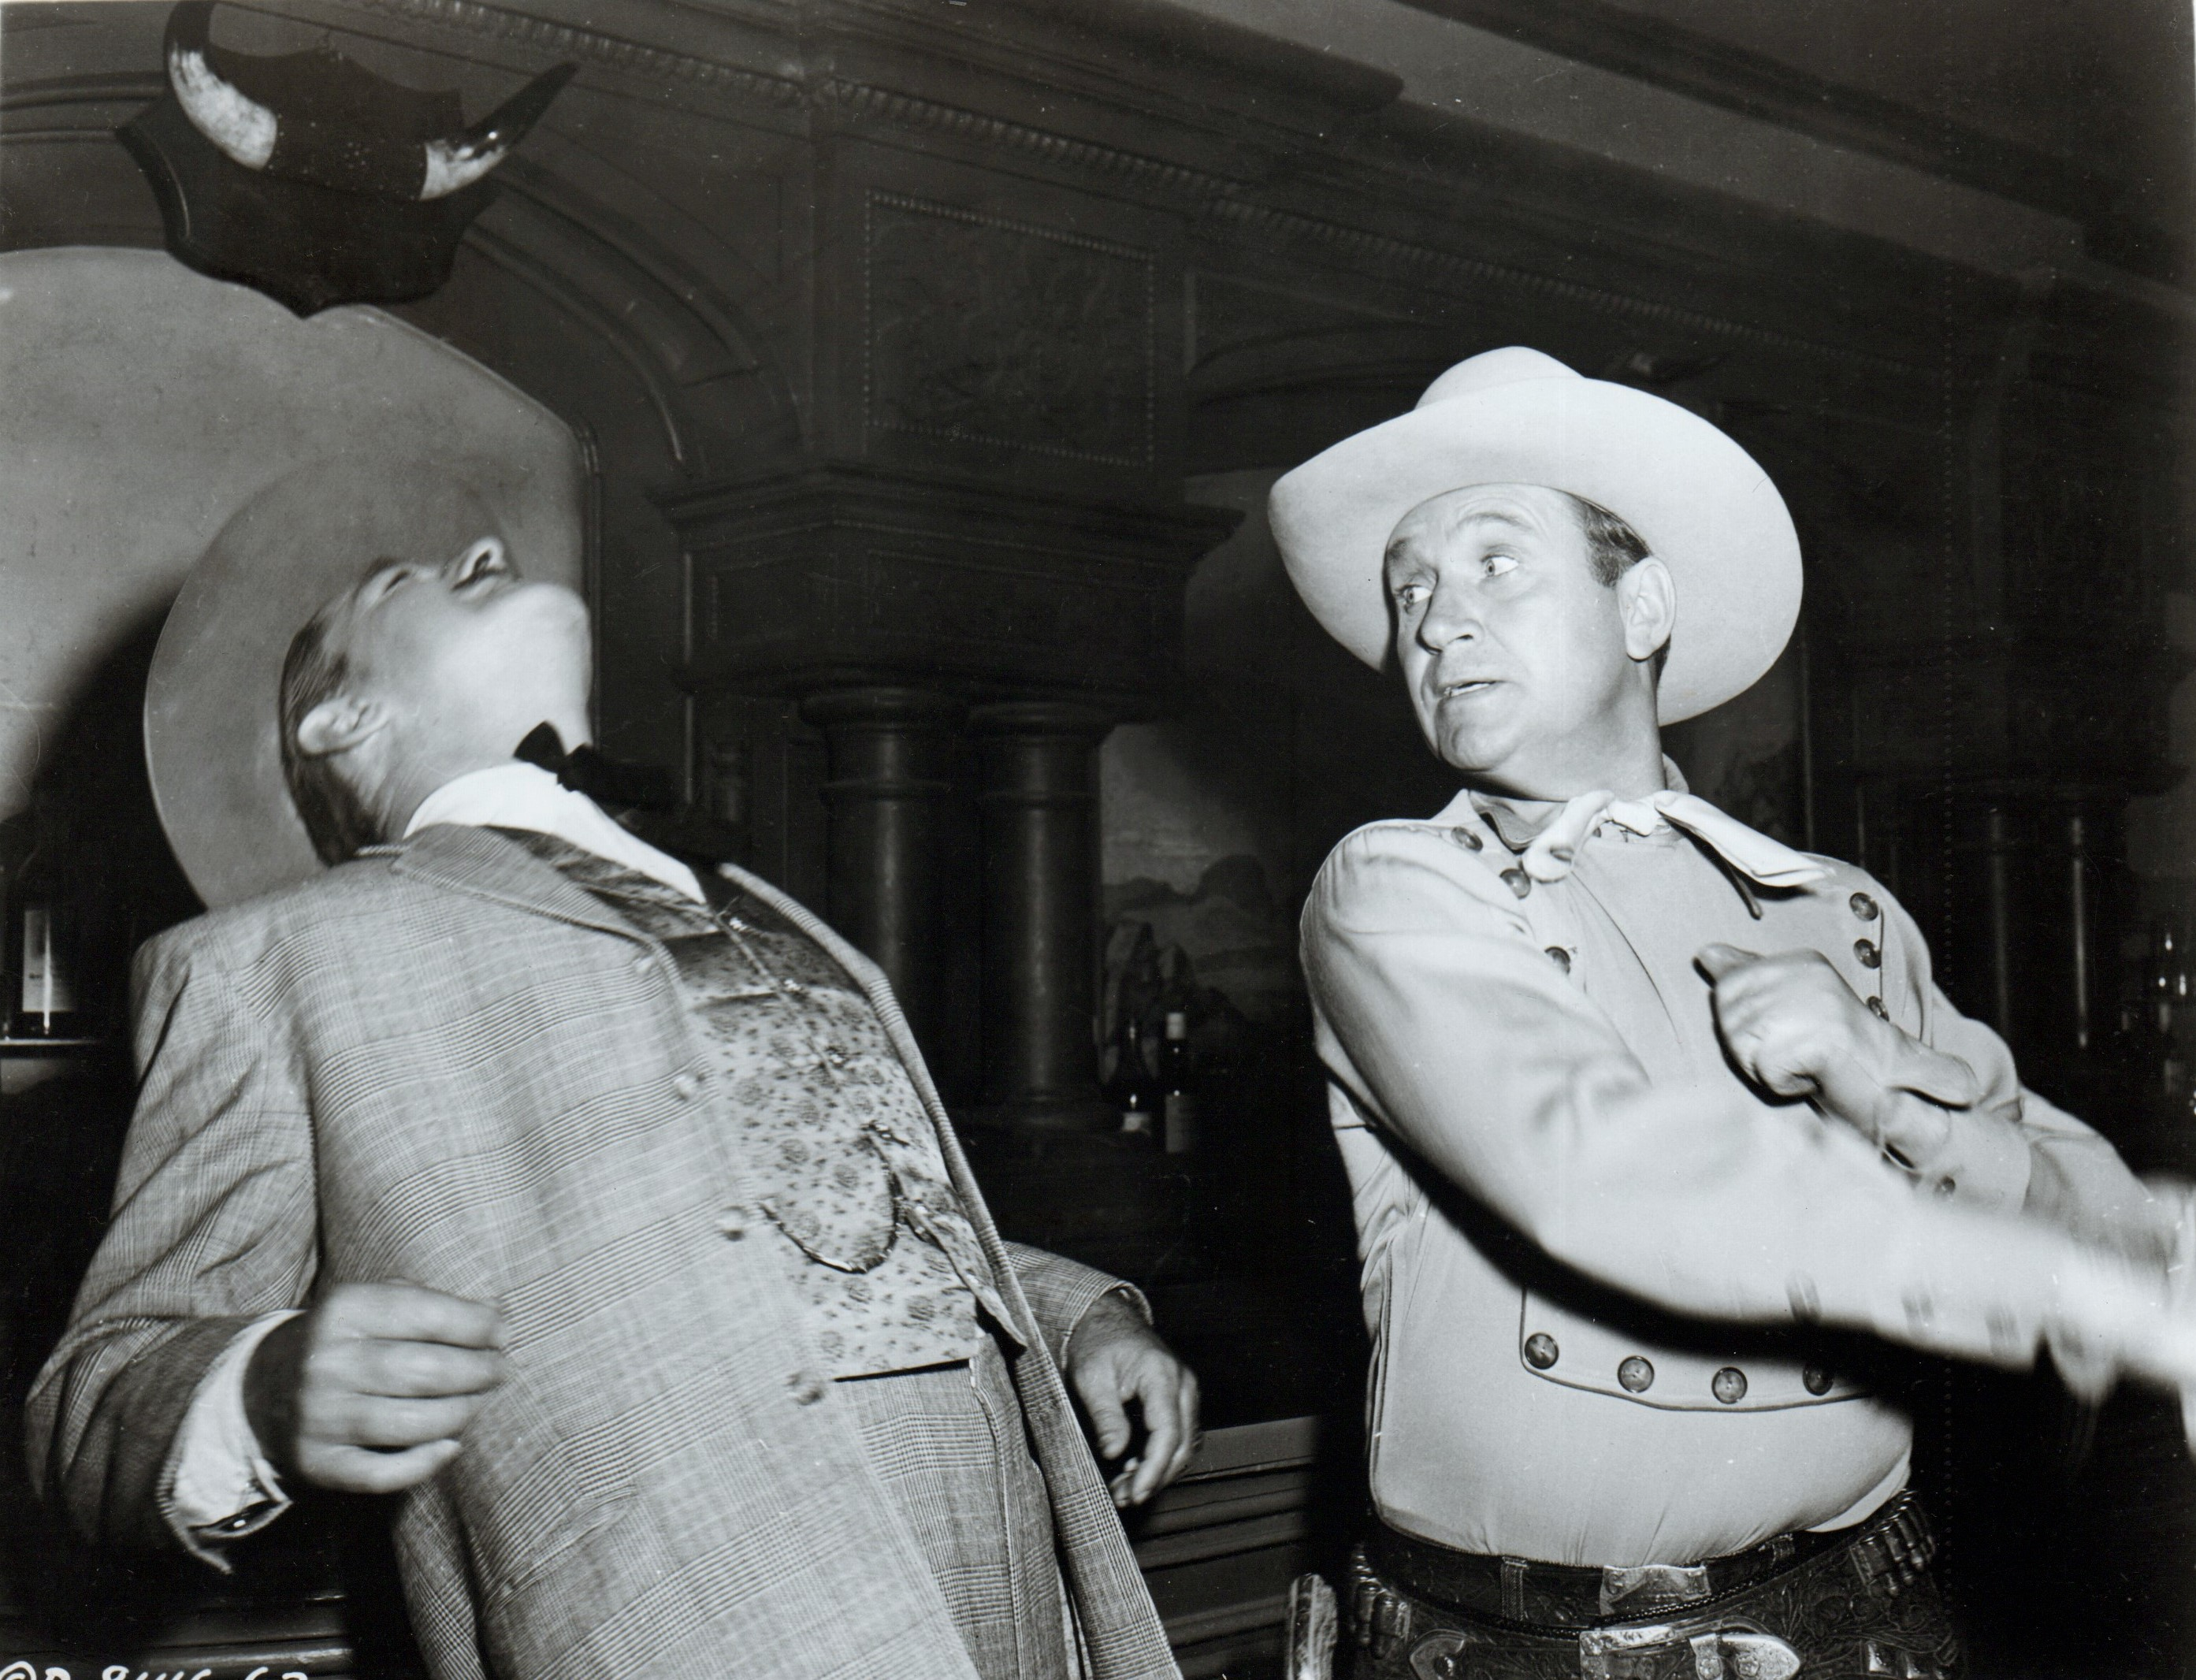 Gene Autry and Kenne Duncan in Pack Train (1953)